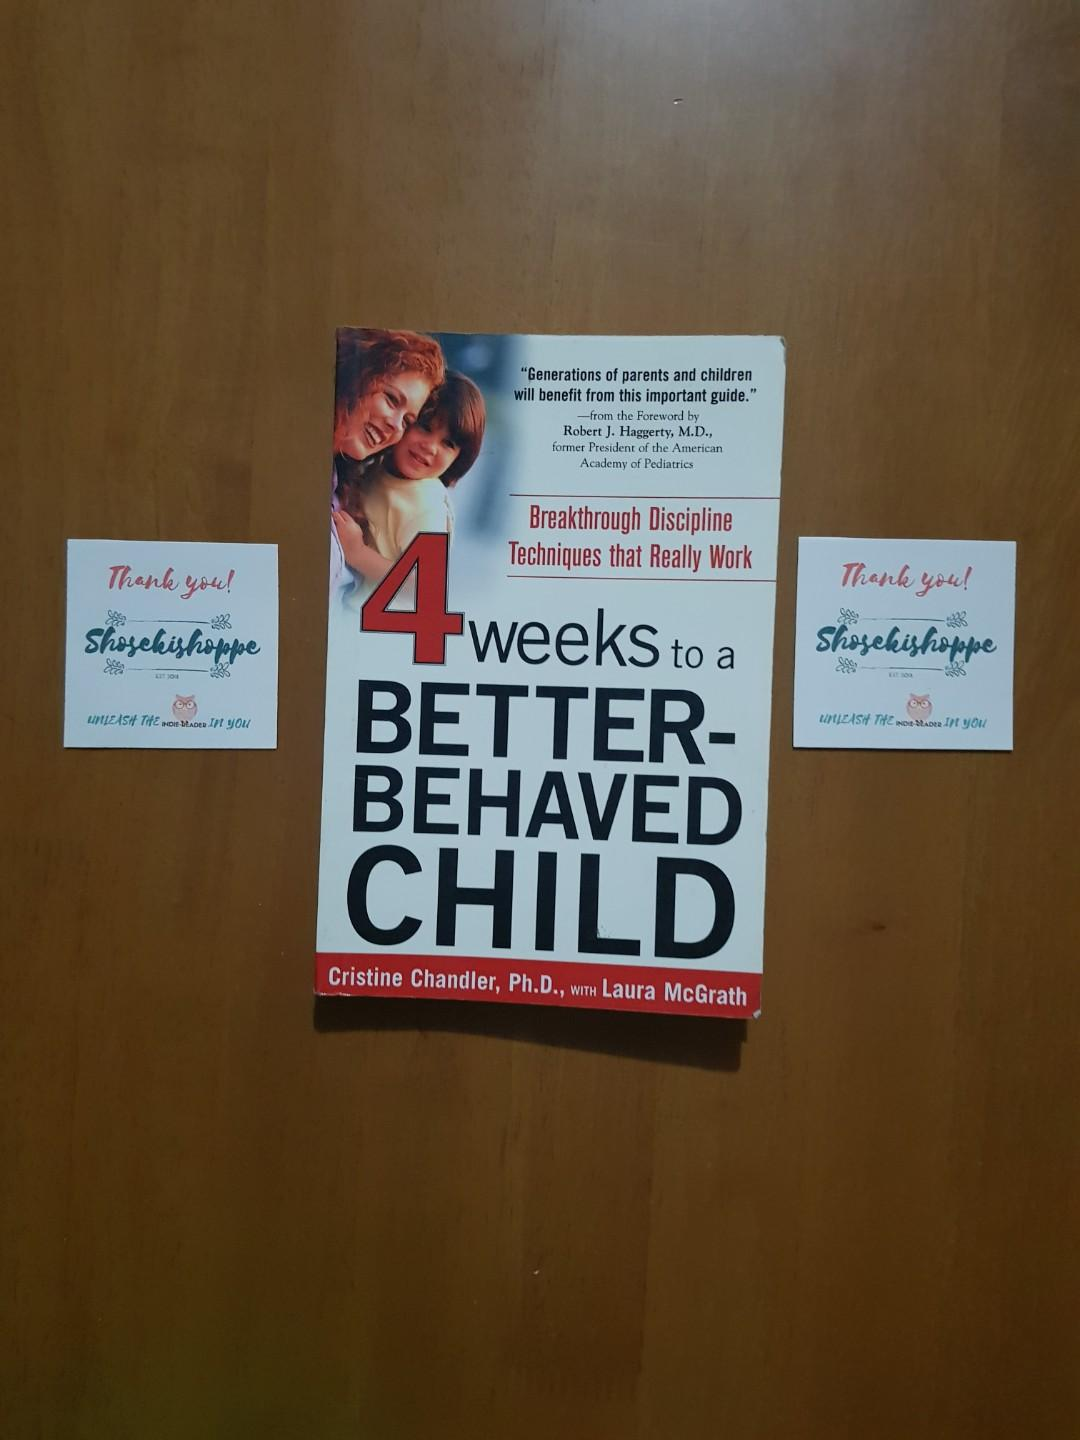 4 Weeks to a Better-Behaved Child by Cristine Chandler, Ph. D., with Laura Mcgrath